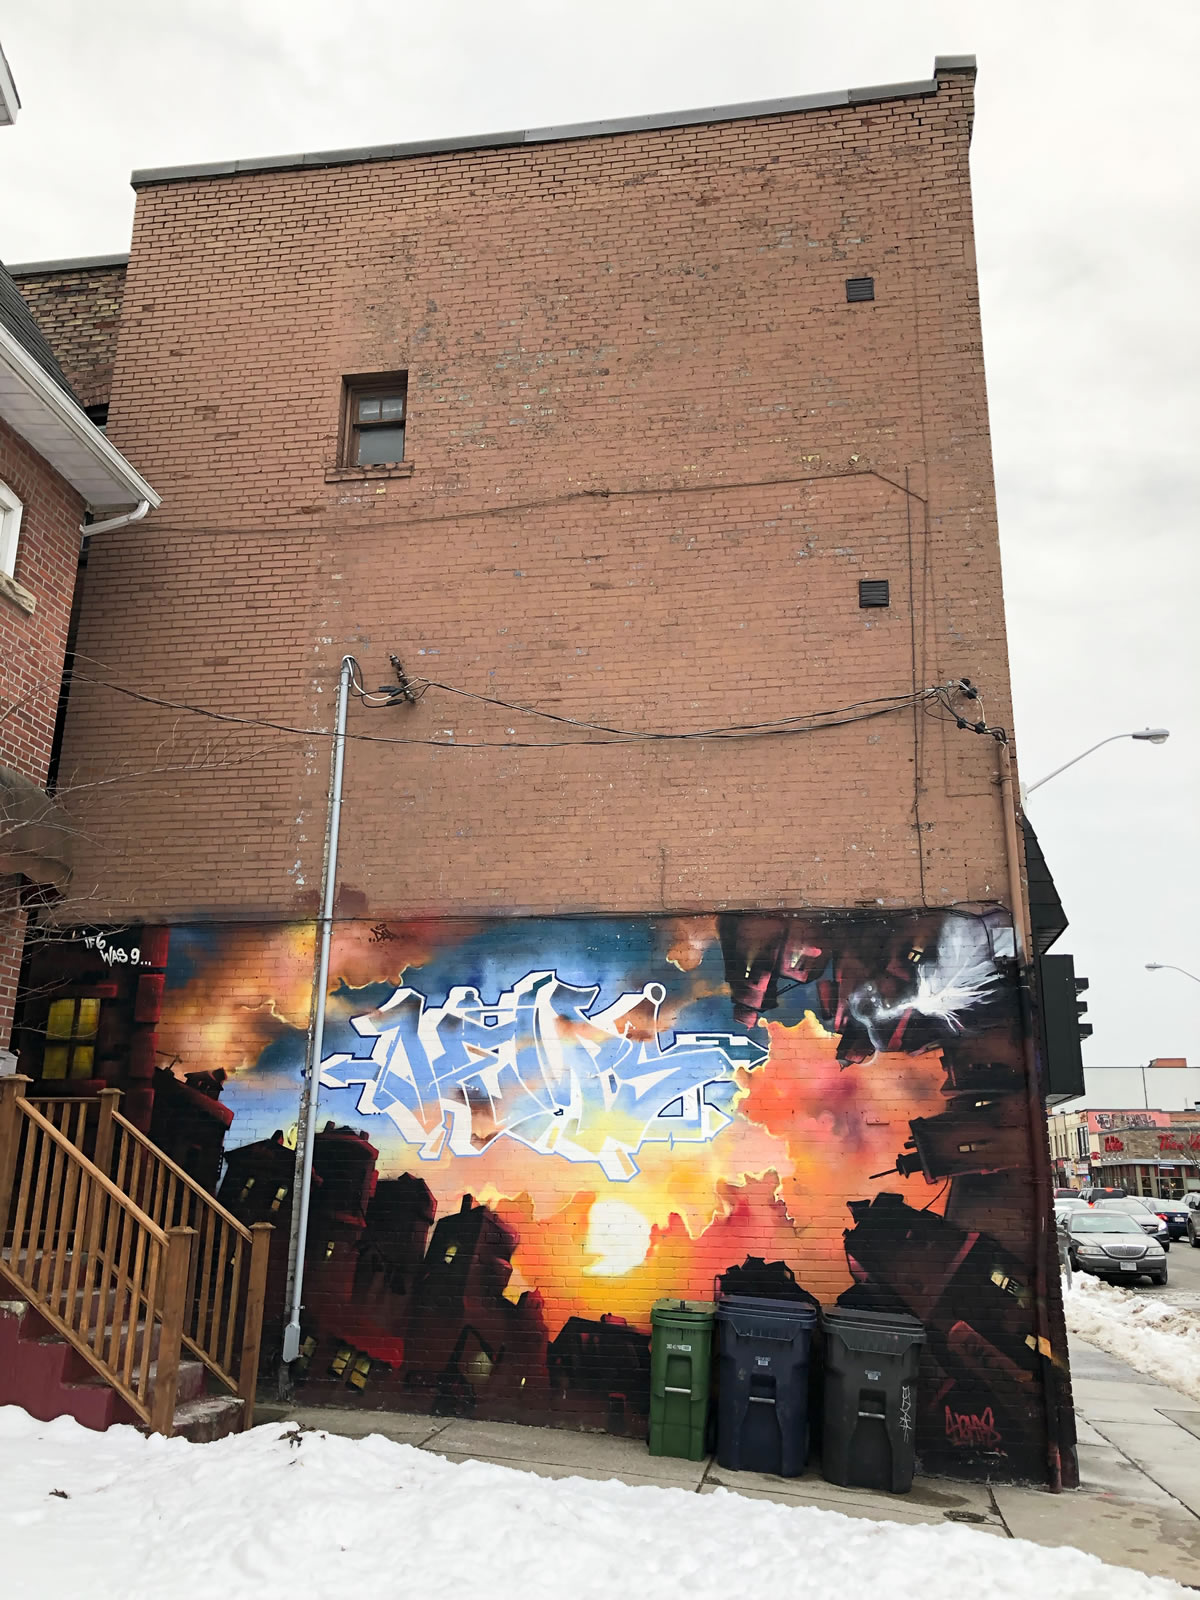 """That mural by Hemps has been there for years and never gets tagged. Says """"If 6 were a 9"""""""